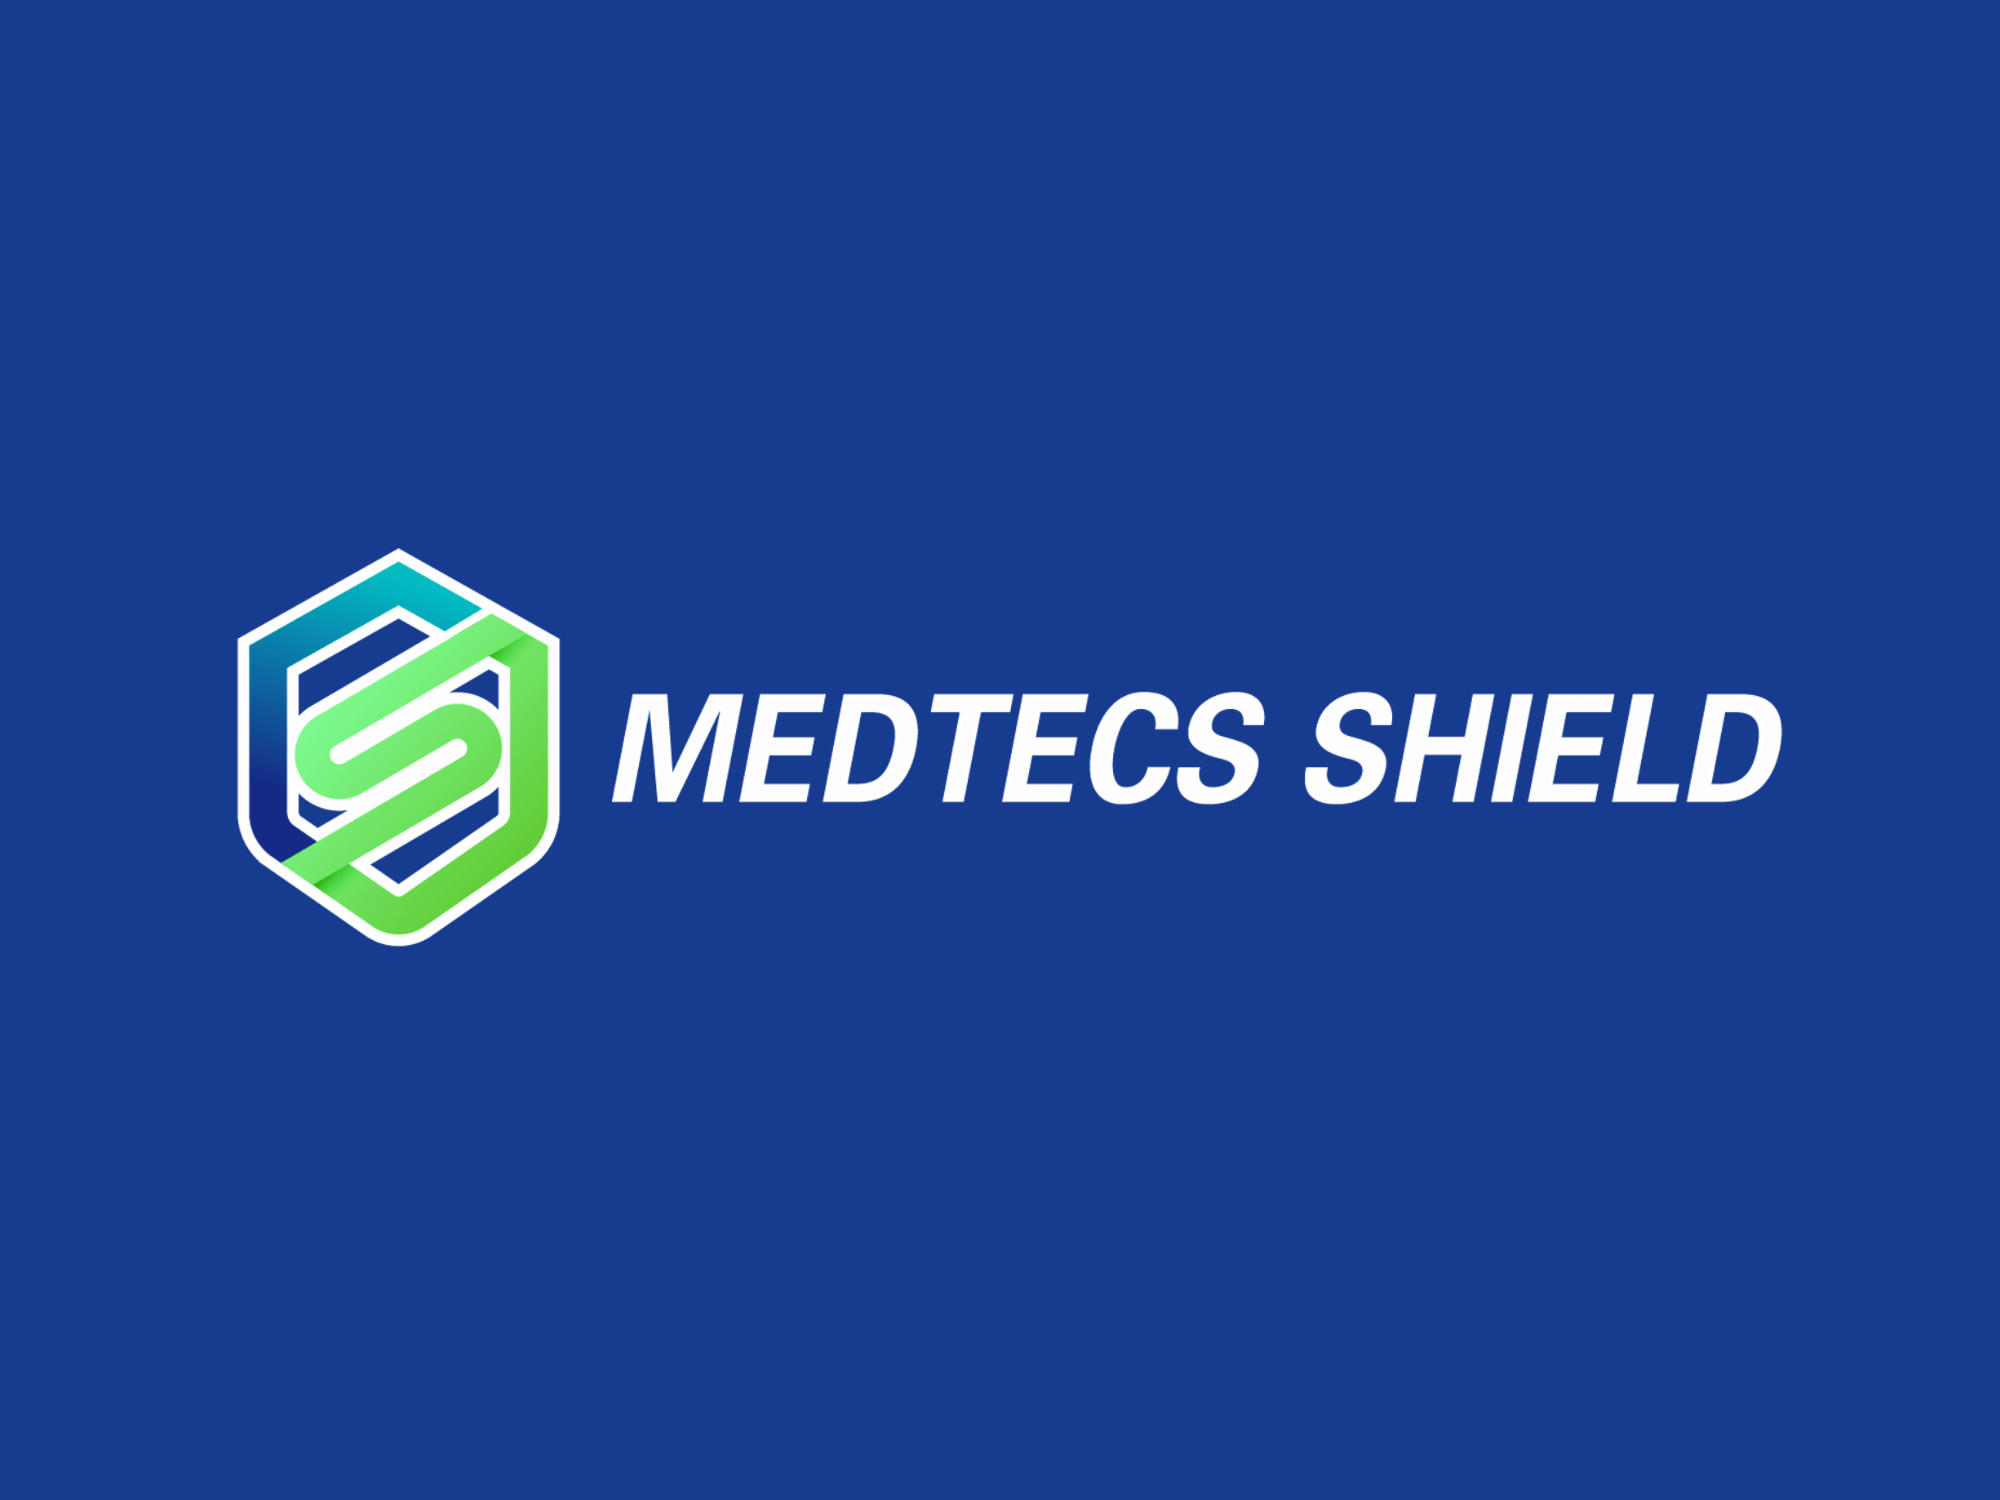 Medtecs Shield